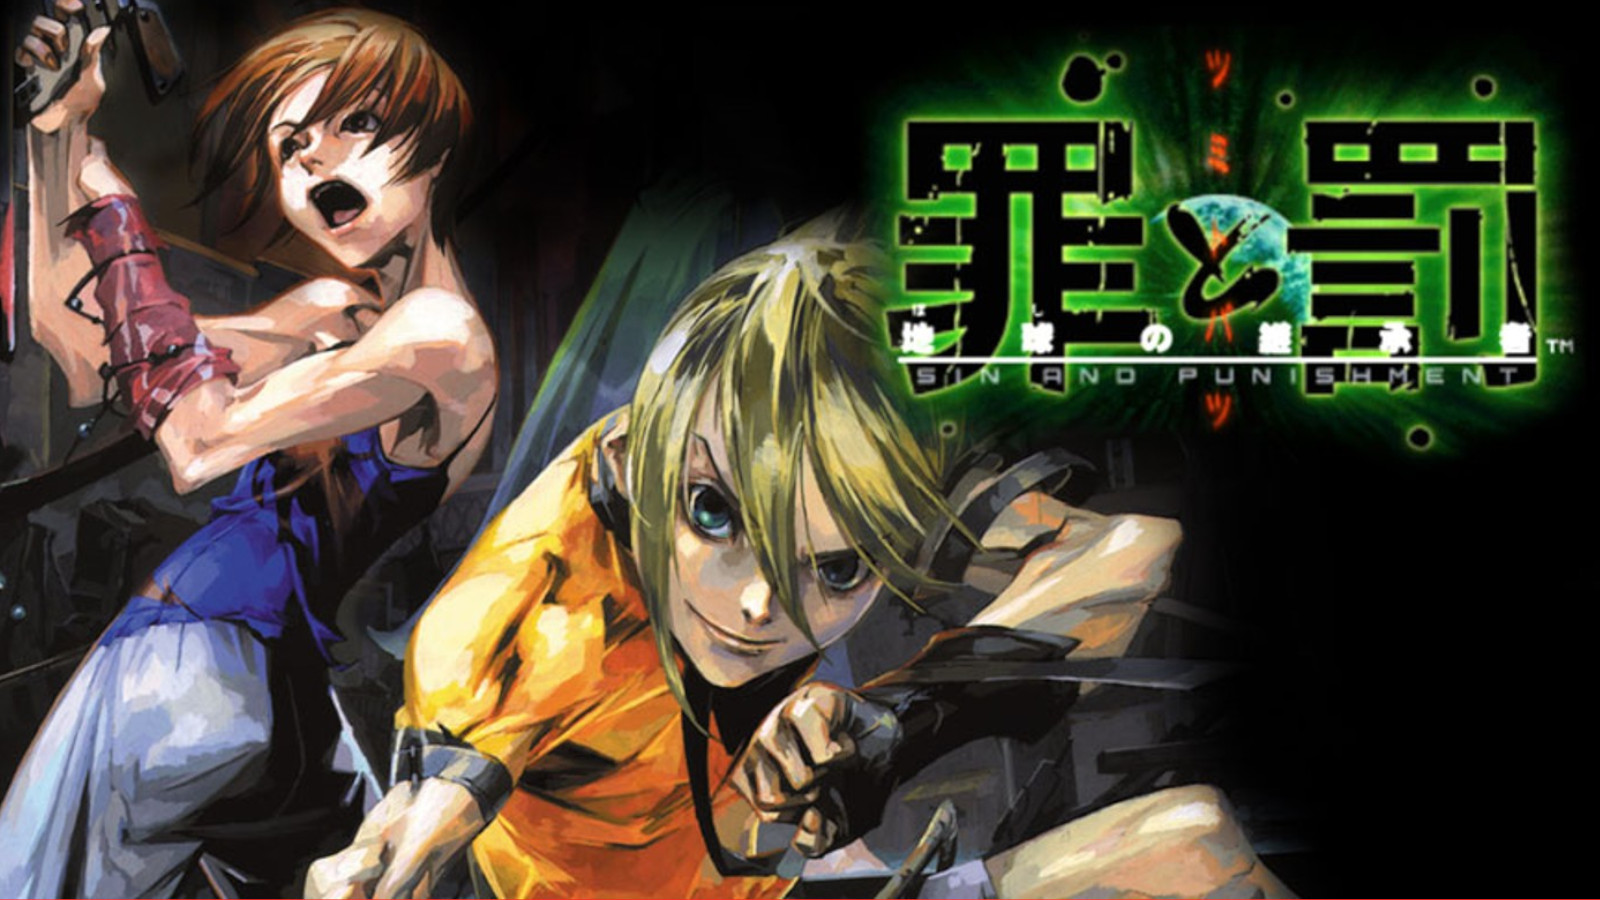 Key art for Sin and Punishment